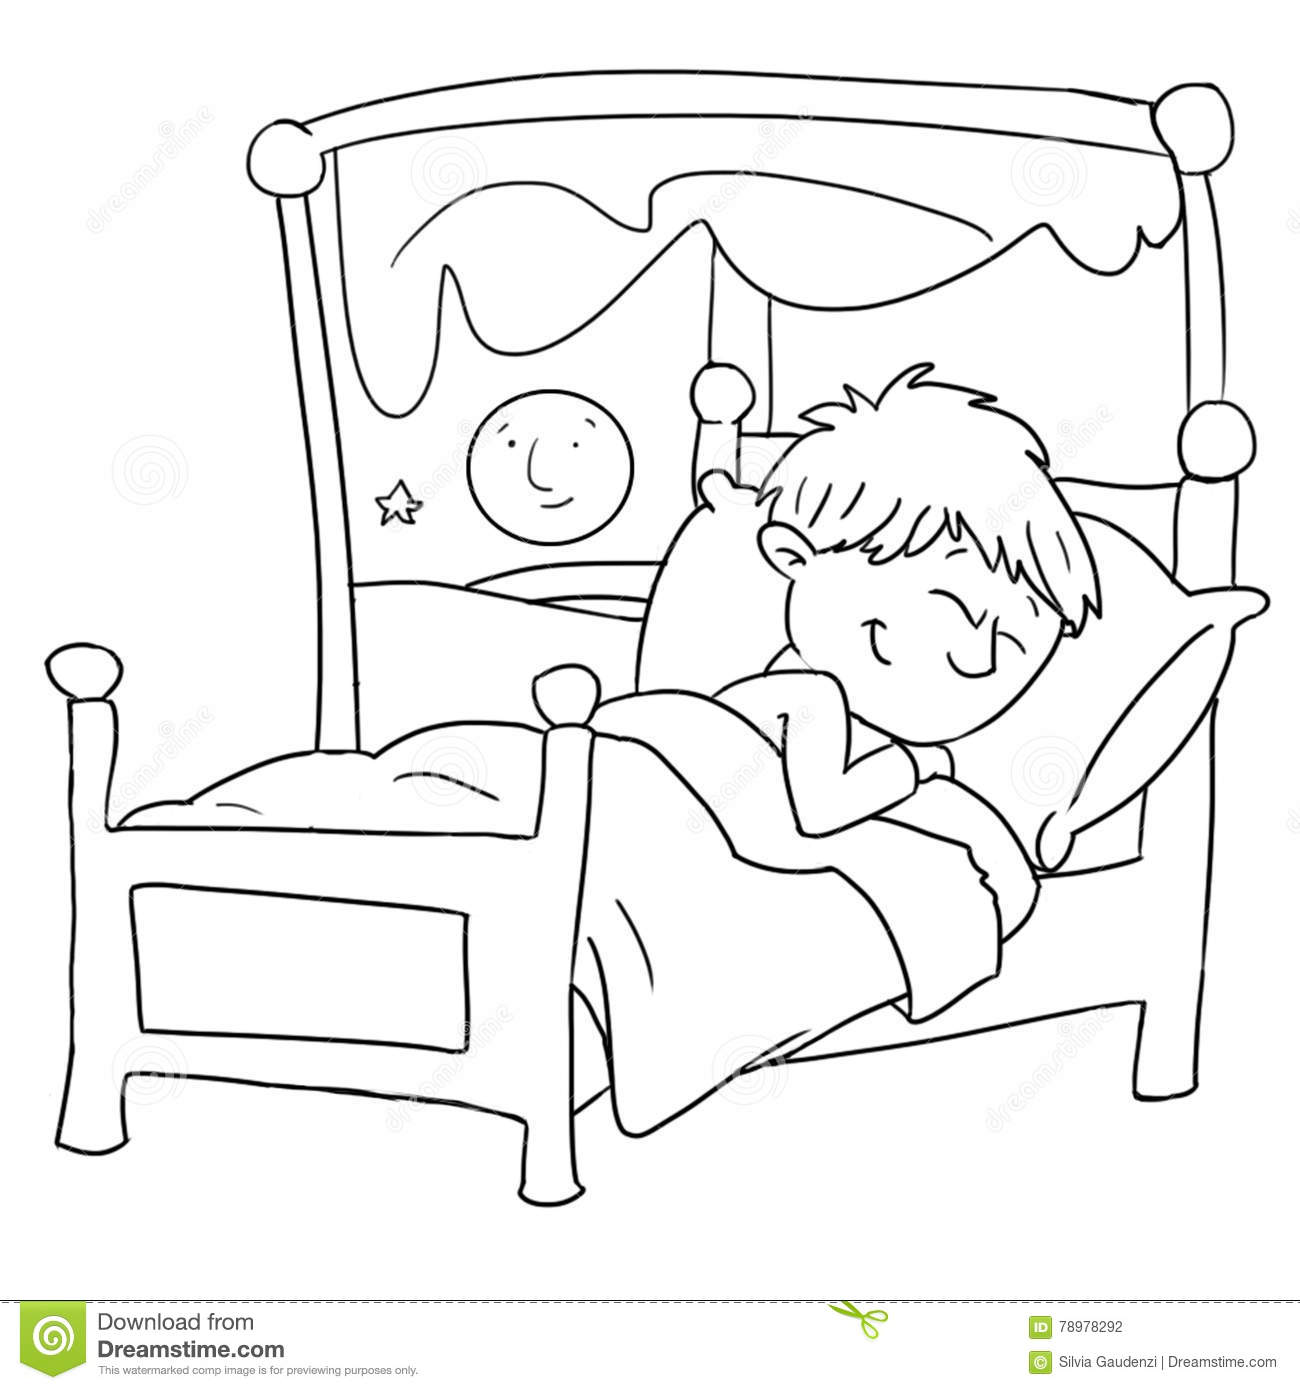 Sleeping clipart black and white clip art library download Child sleeping clipart black and white » Clipart Station clip art library download